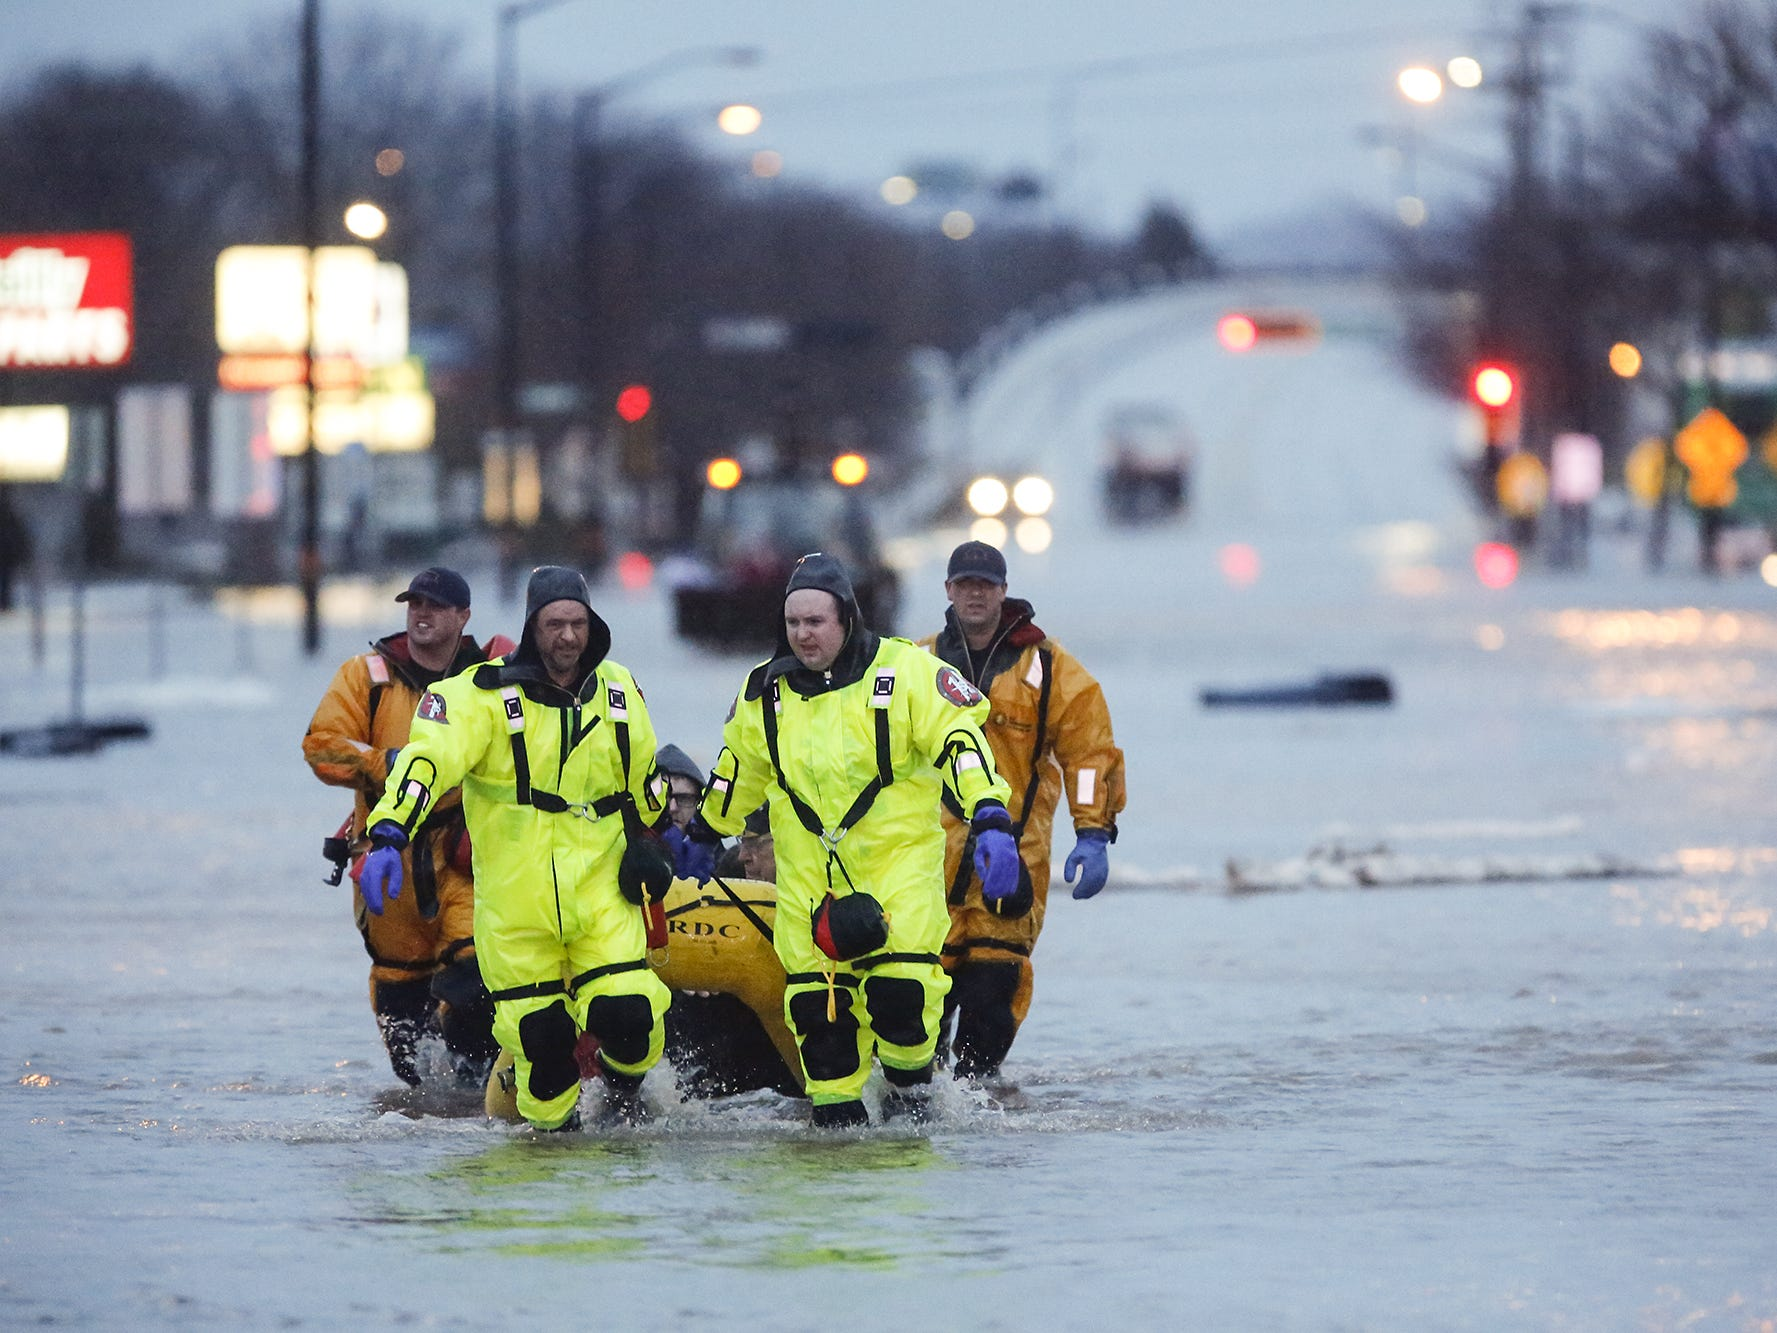 Firefighters rescue a group of people out of a flooded area Thursday, March 14, 2019 on Johnson Street in Fond du Lac Wis. Thursday, March 14, 2019. Ice jams on the east branch of the Fond du Lac River and heavy rain caused widespread flooding problems in the city. Doug Raflik/USA TODAY NETWORK-Wisconsin